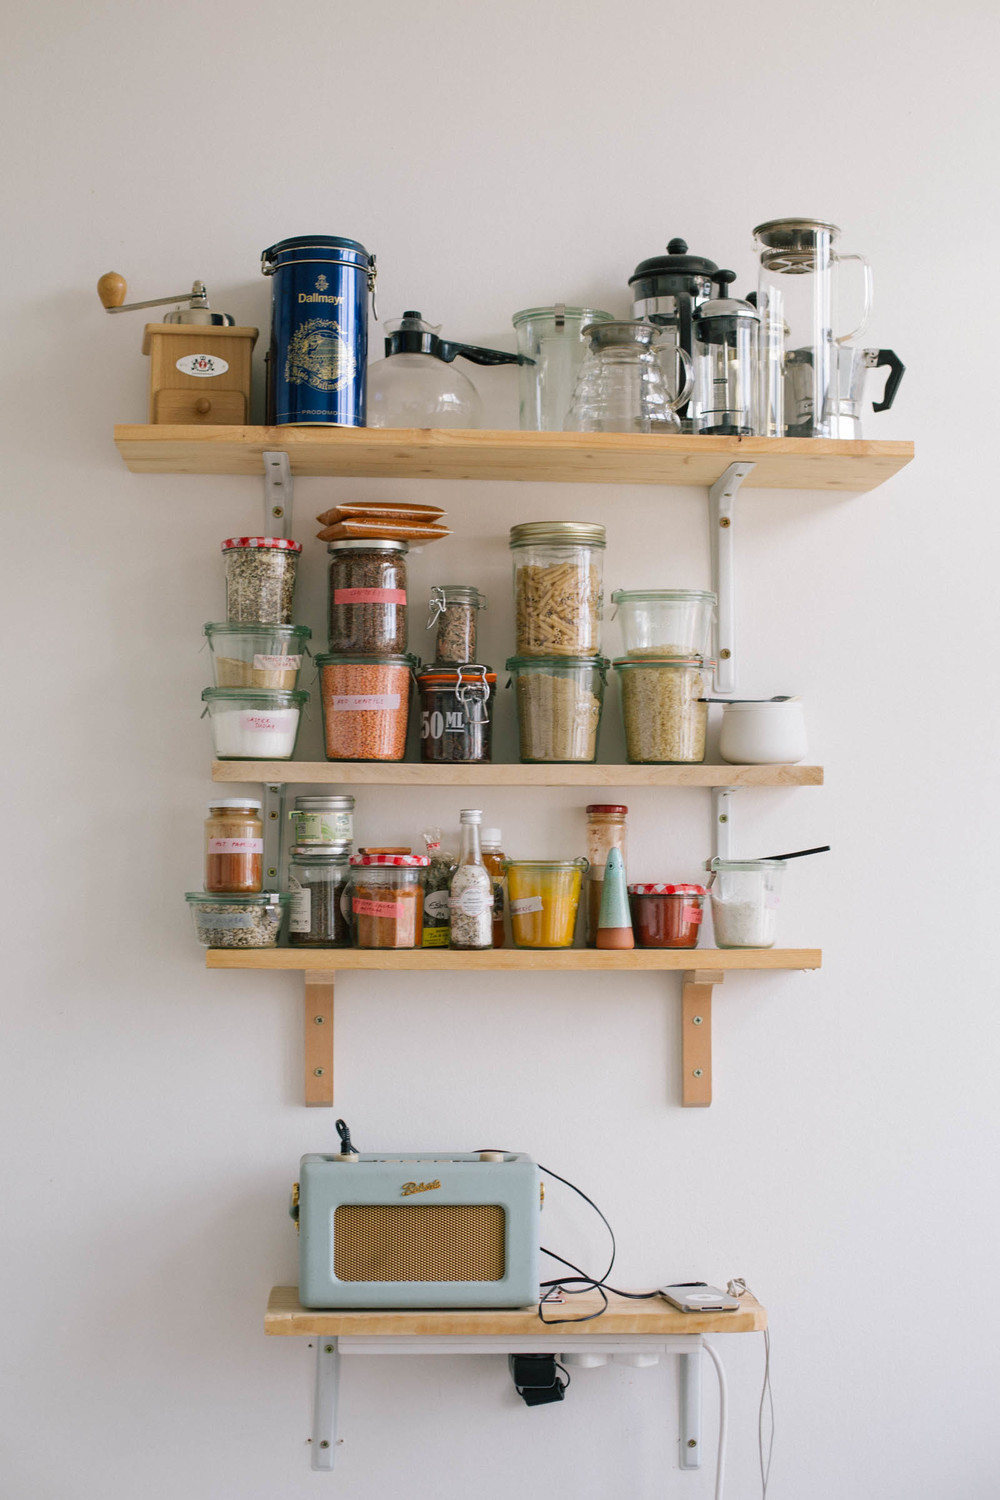 Spice shelves and a radio & charging station, built by my boyfriend.